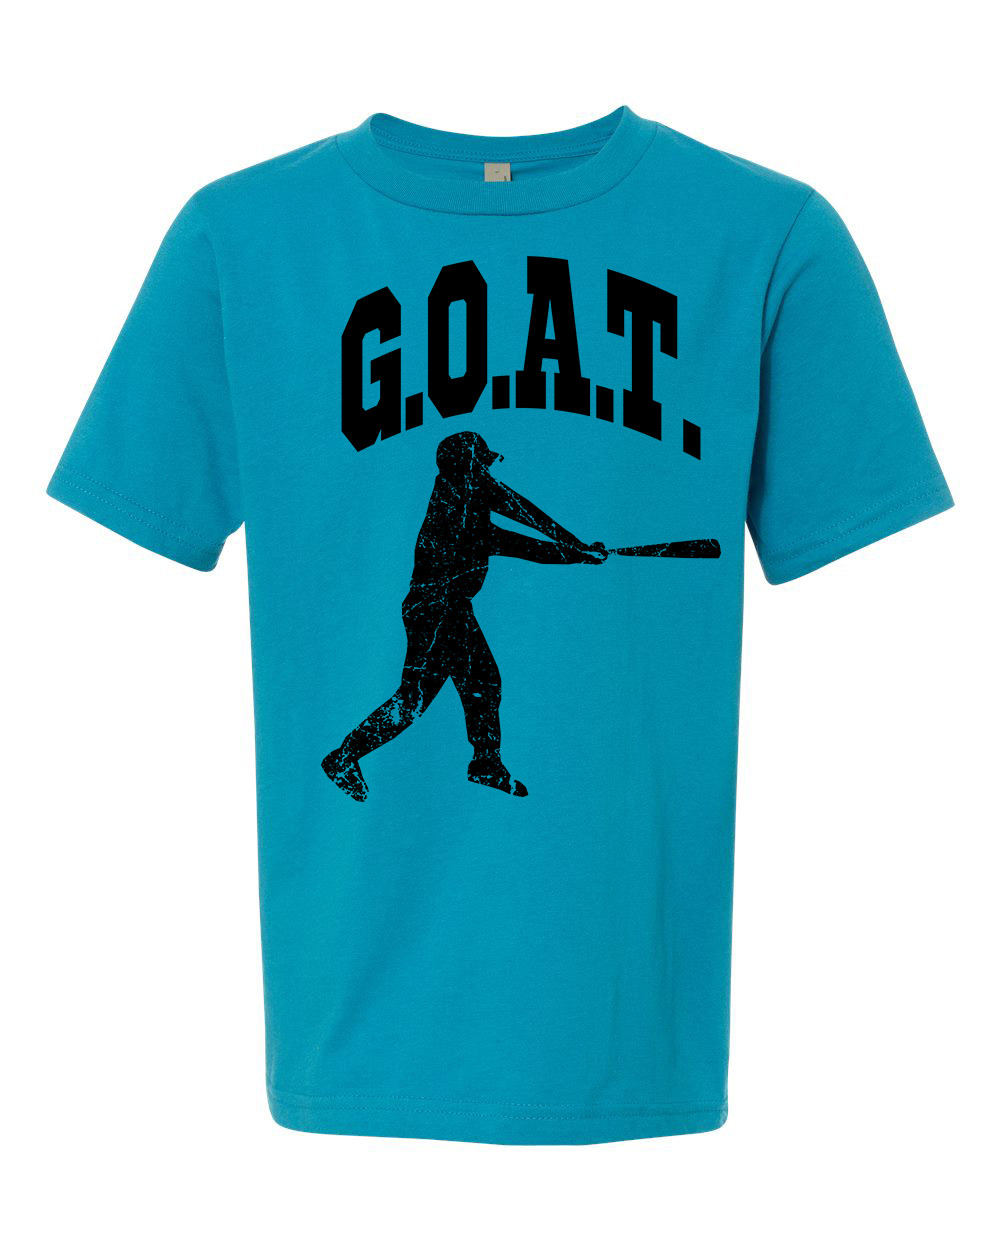 Greatest Of All Times G.O.A.T Baseball Youth Short Sleeve T-Shirt